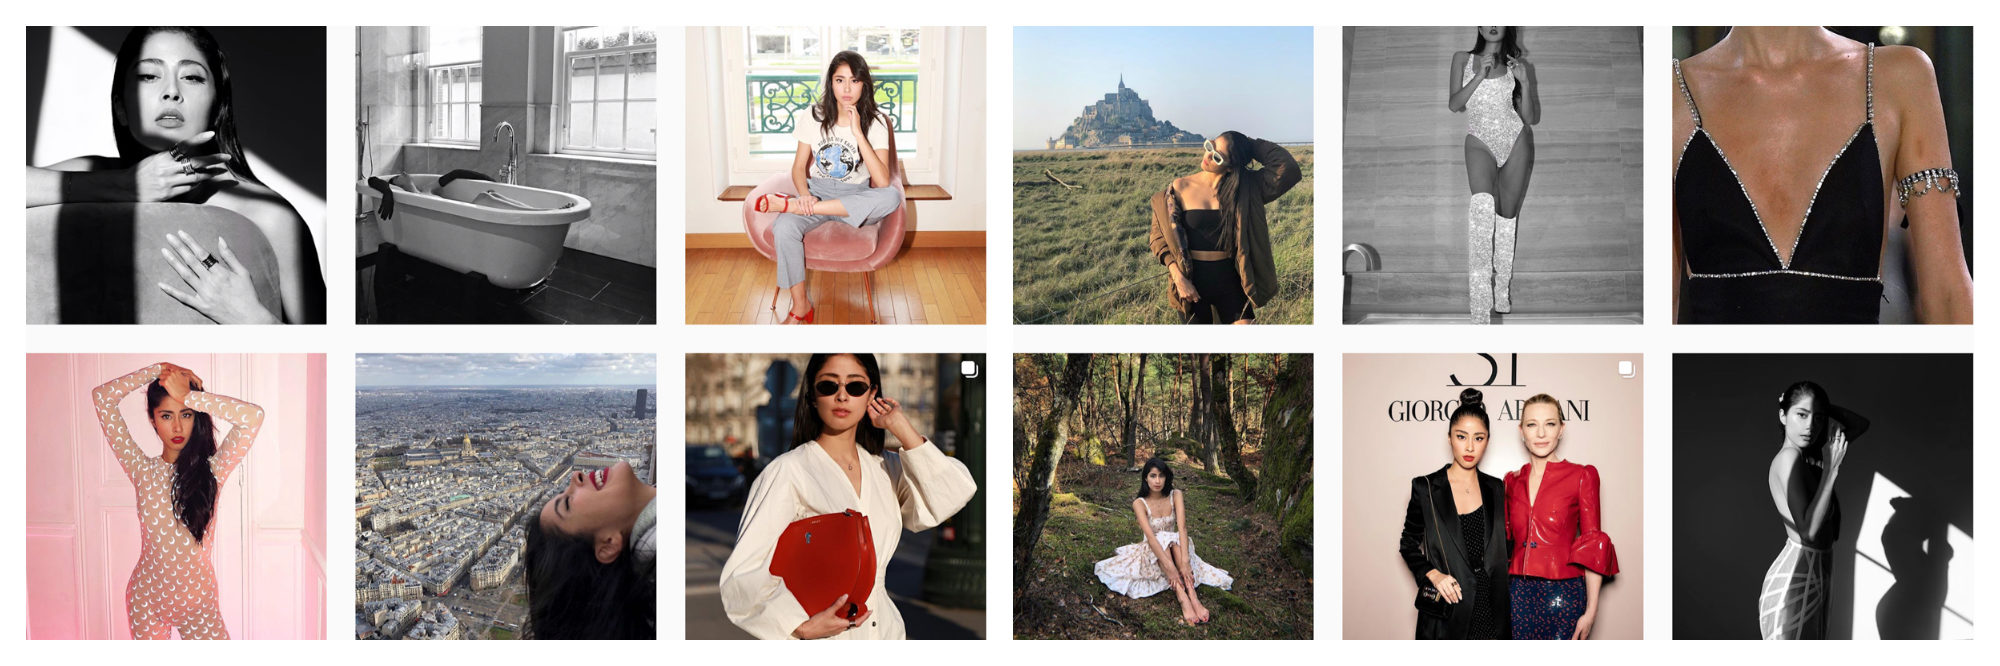 A selection of images of Mexican Instagram fashion influencer Denni Elias.